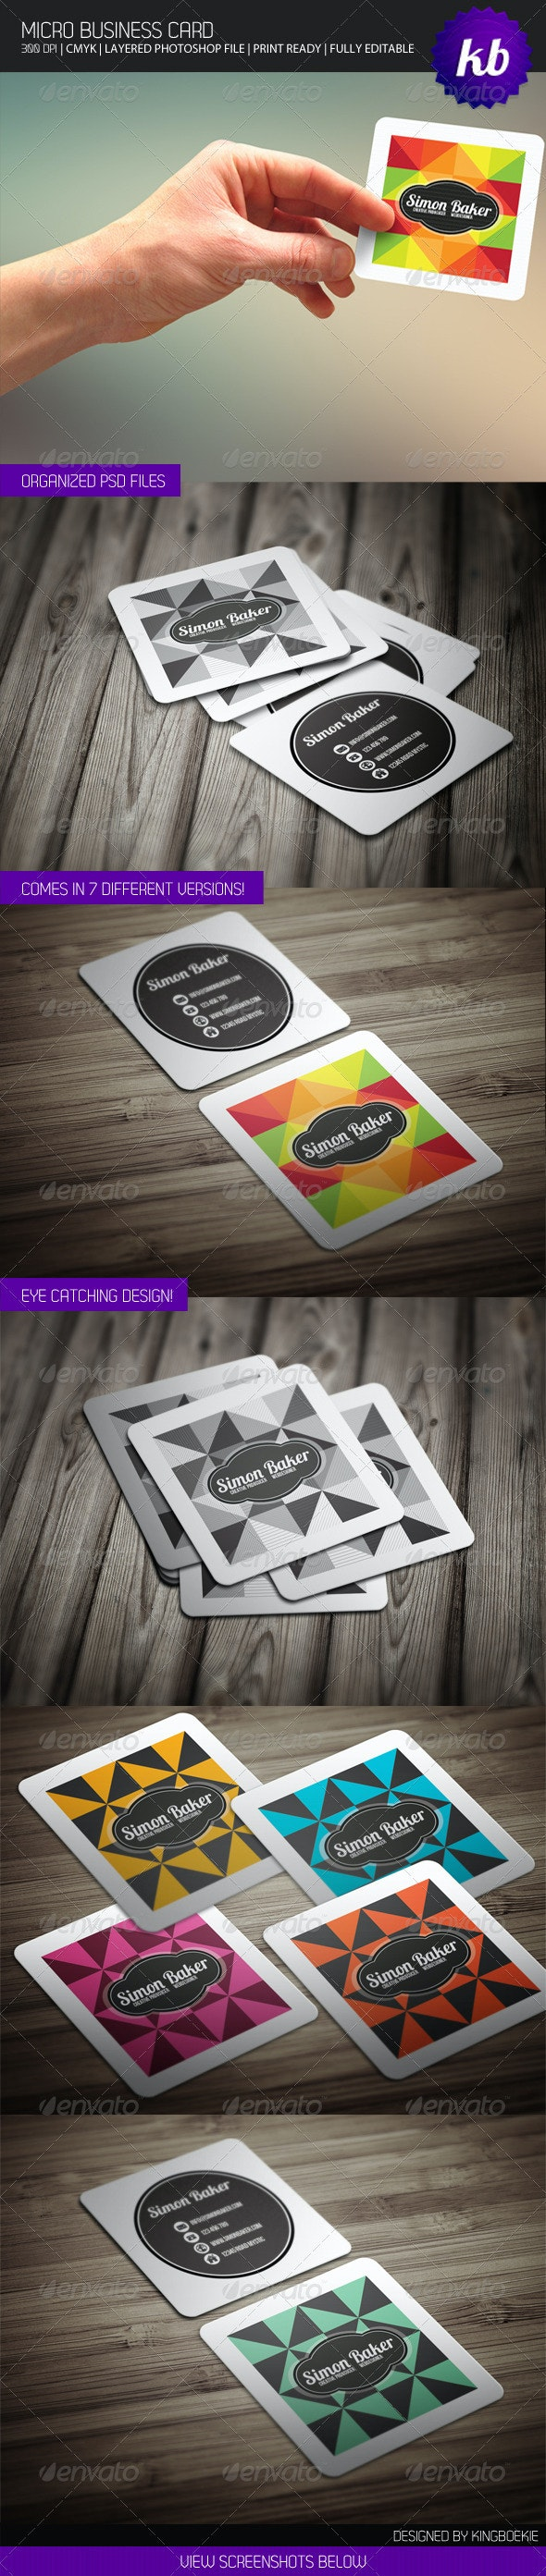 Micro Business Card - Creative Business Cards